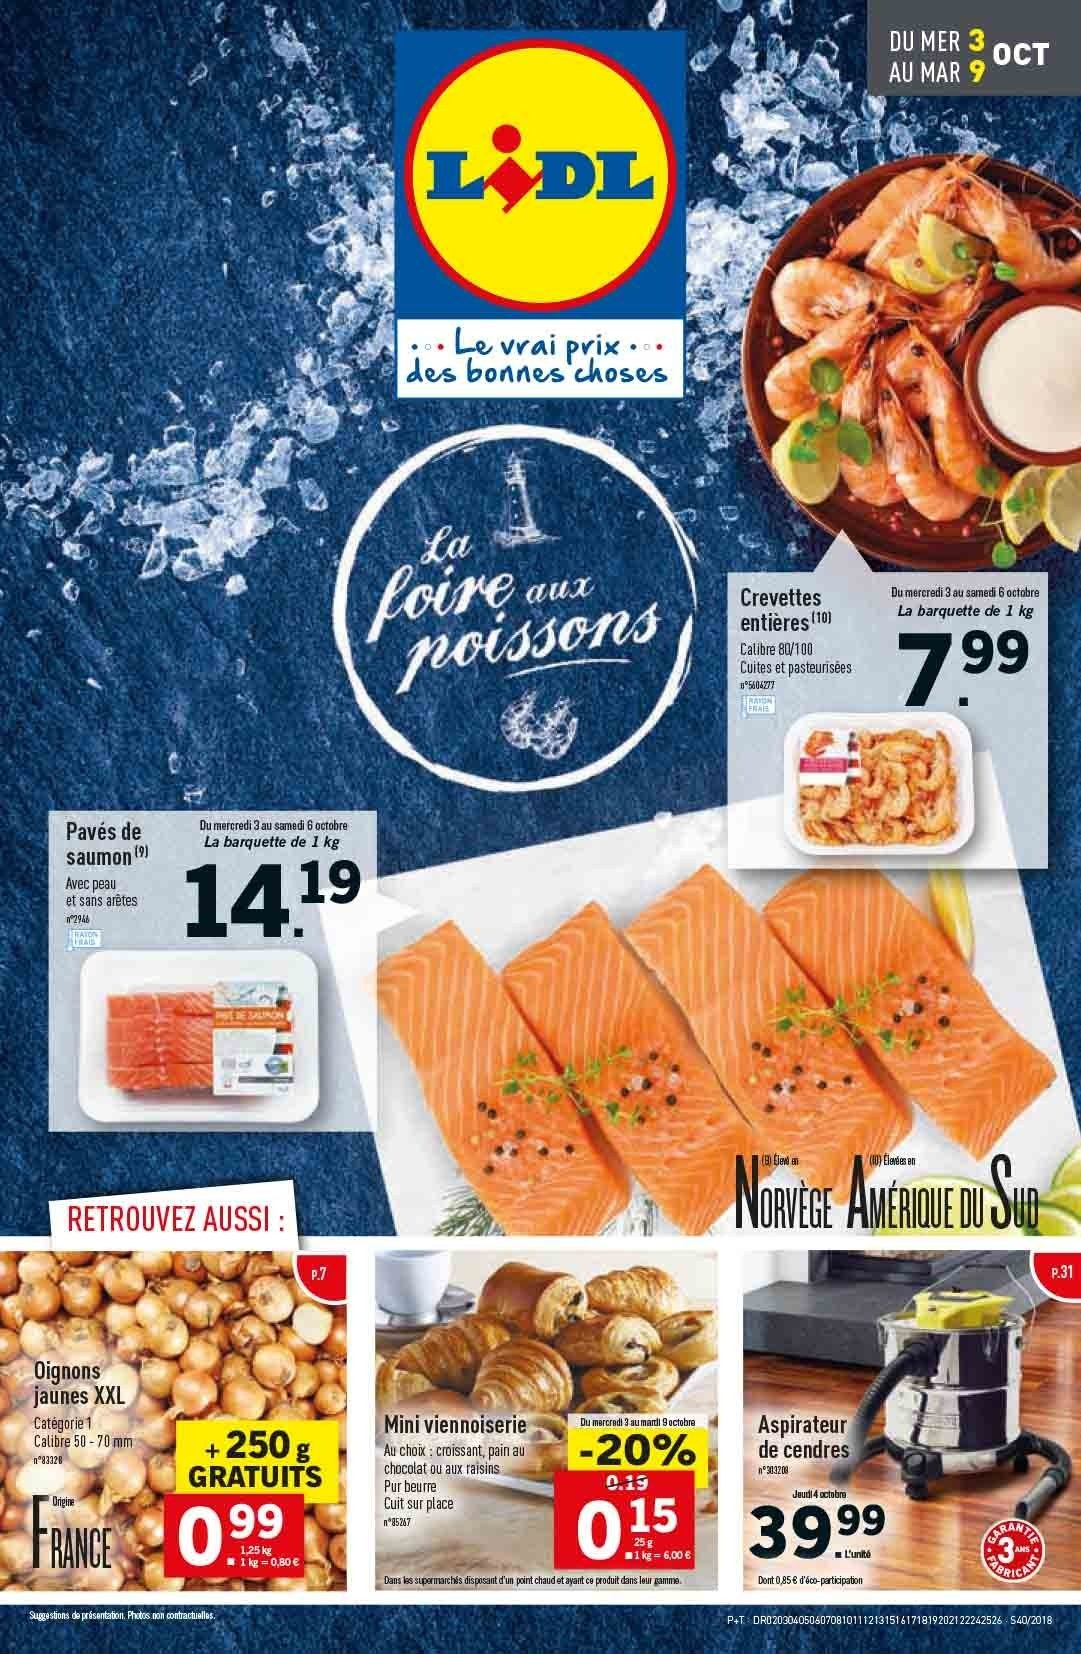 Catalogue Lidl - 03.10.2018 - 09.10.2018. Page 1.